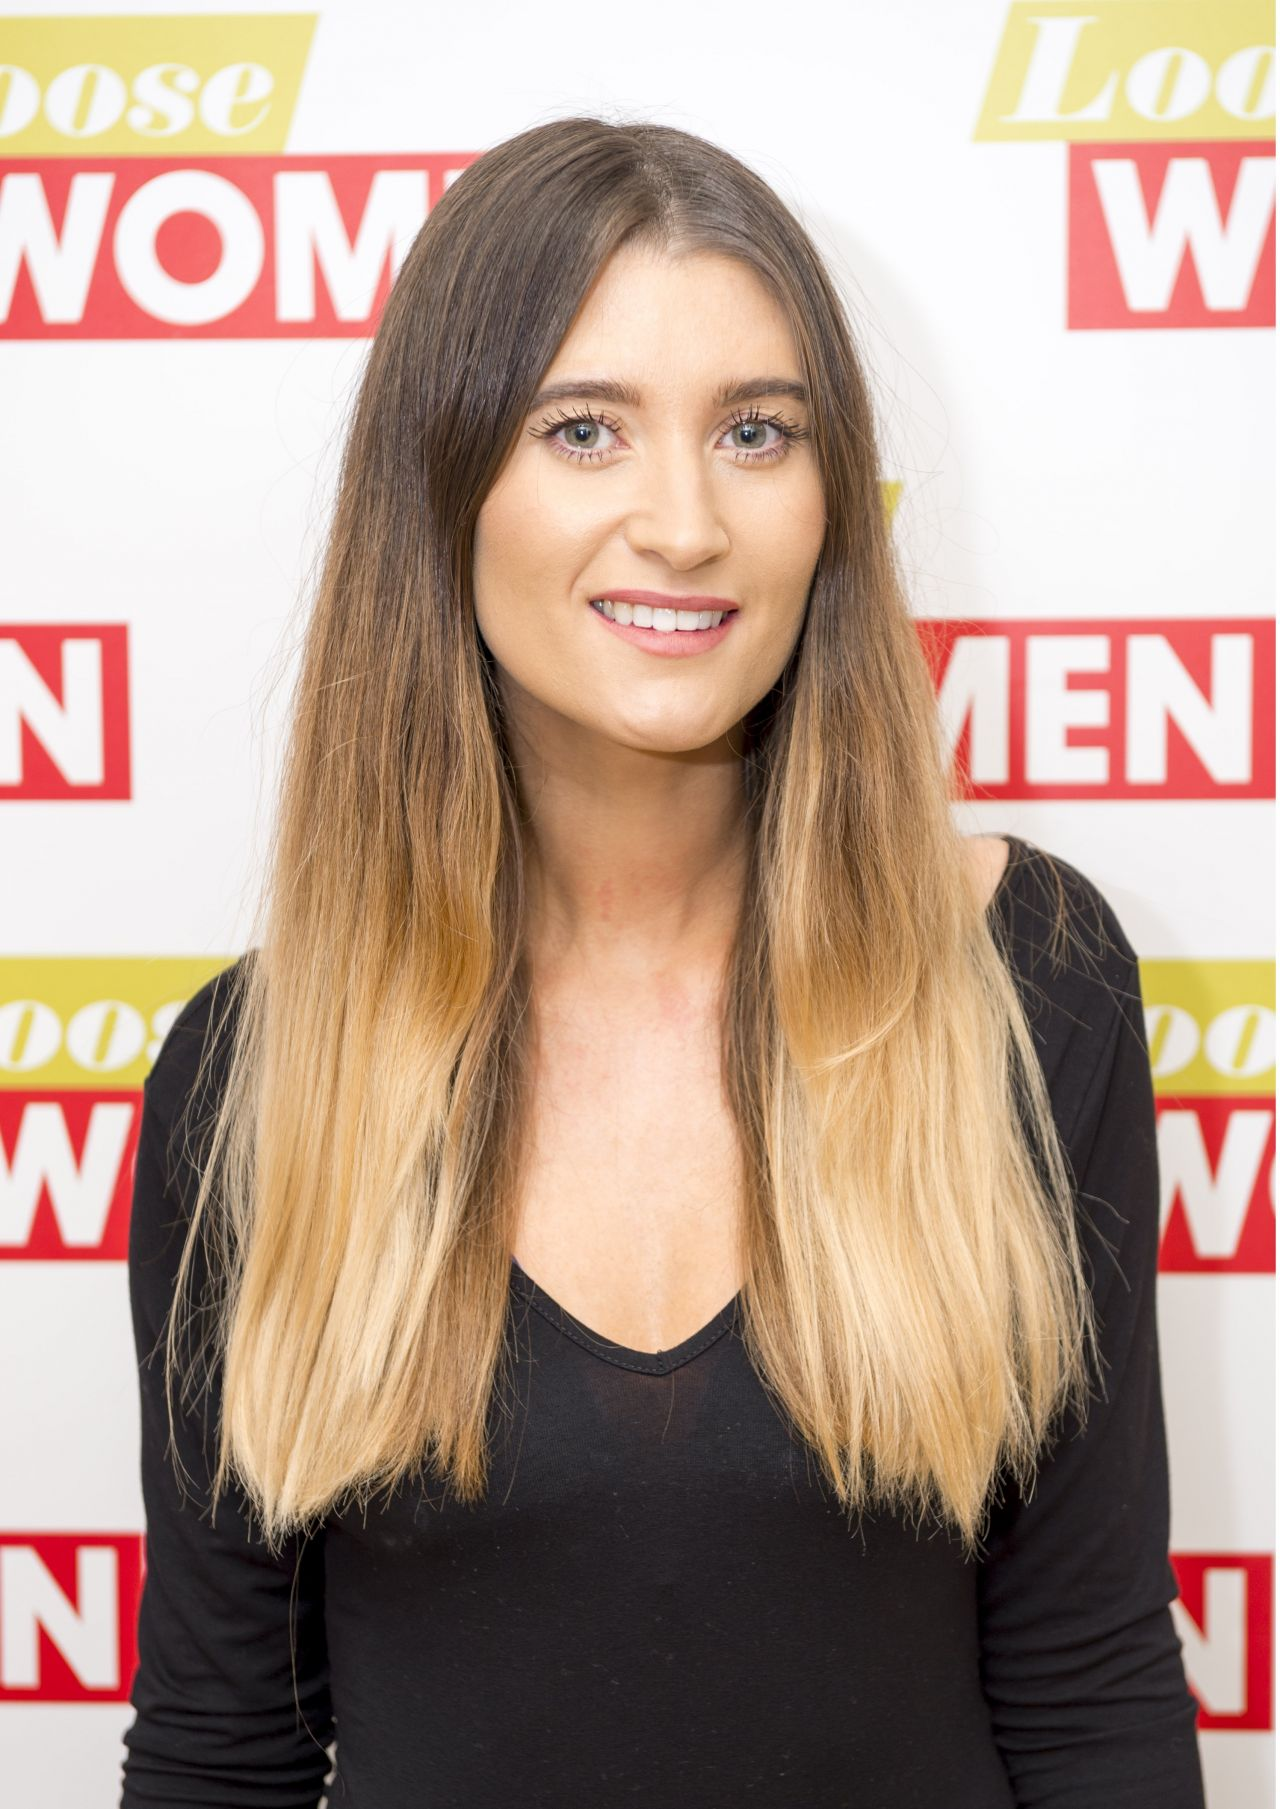 charley webb - photo #26